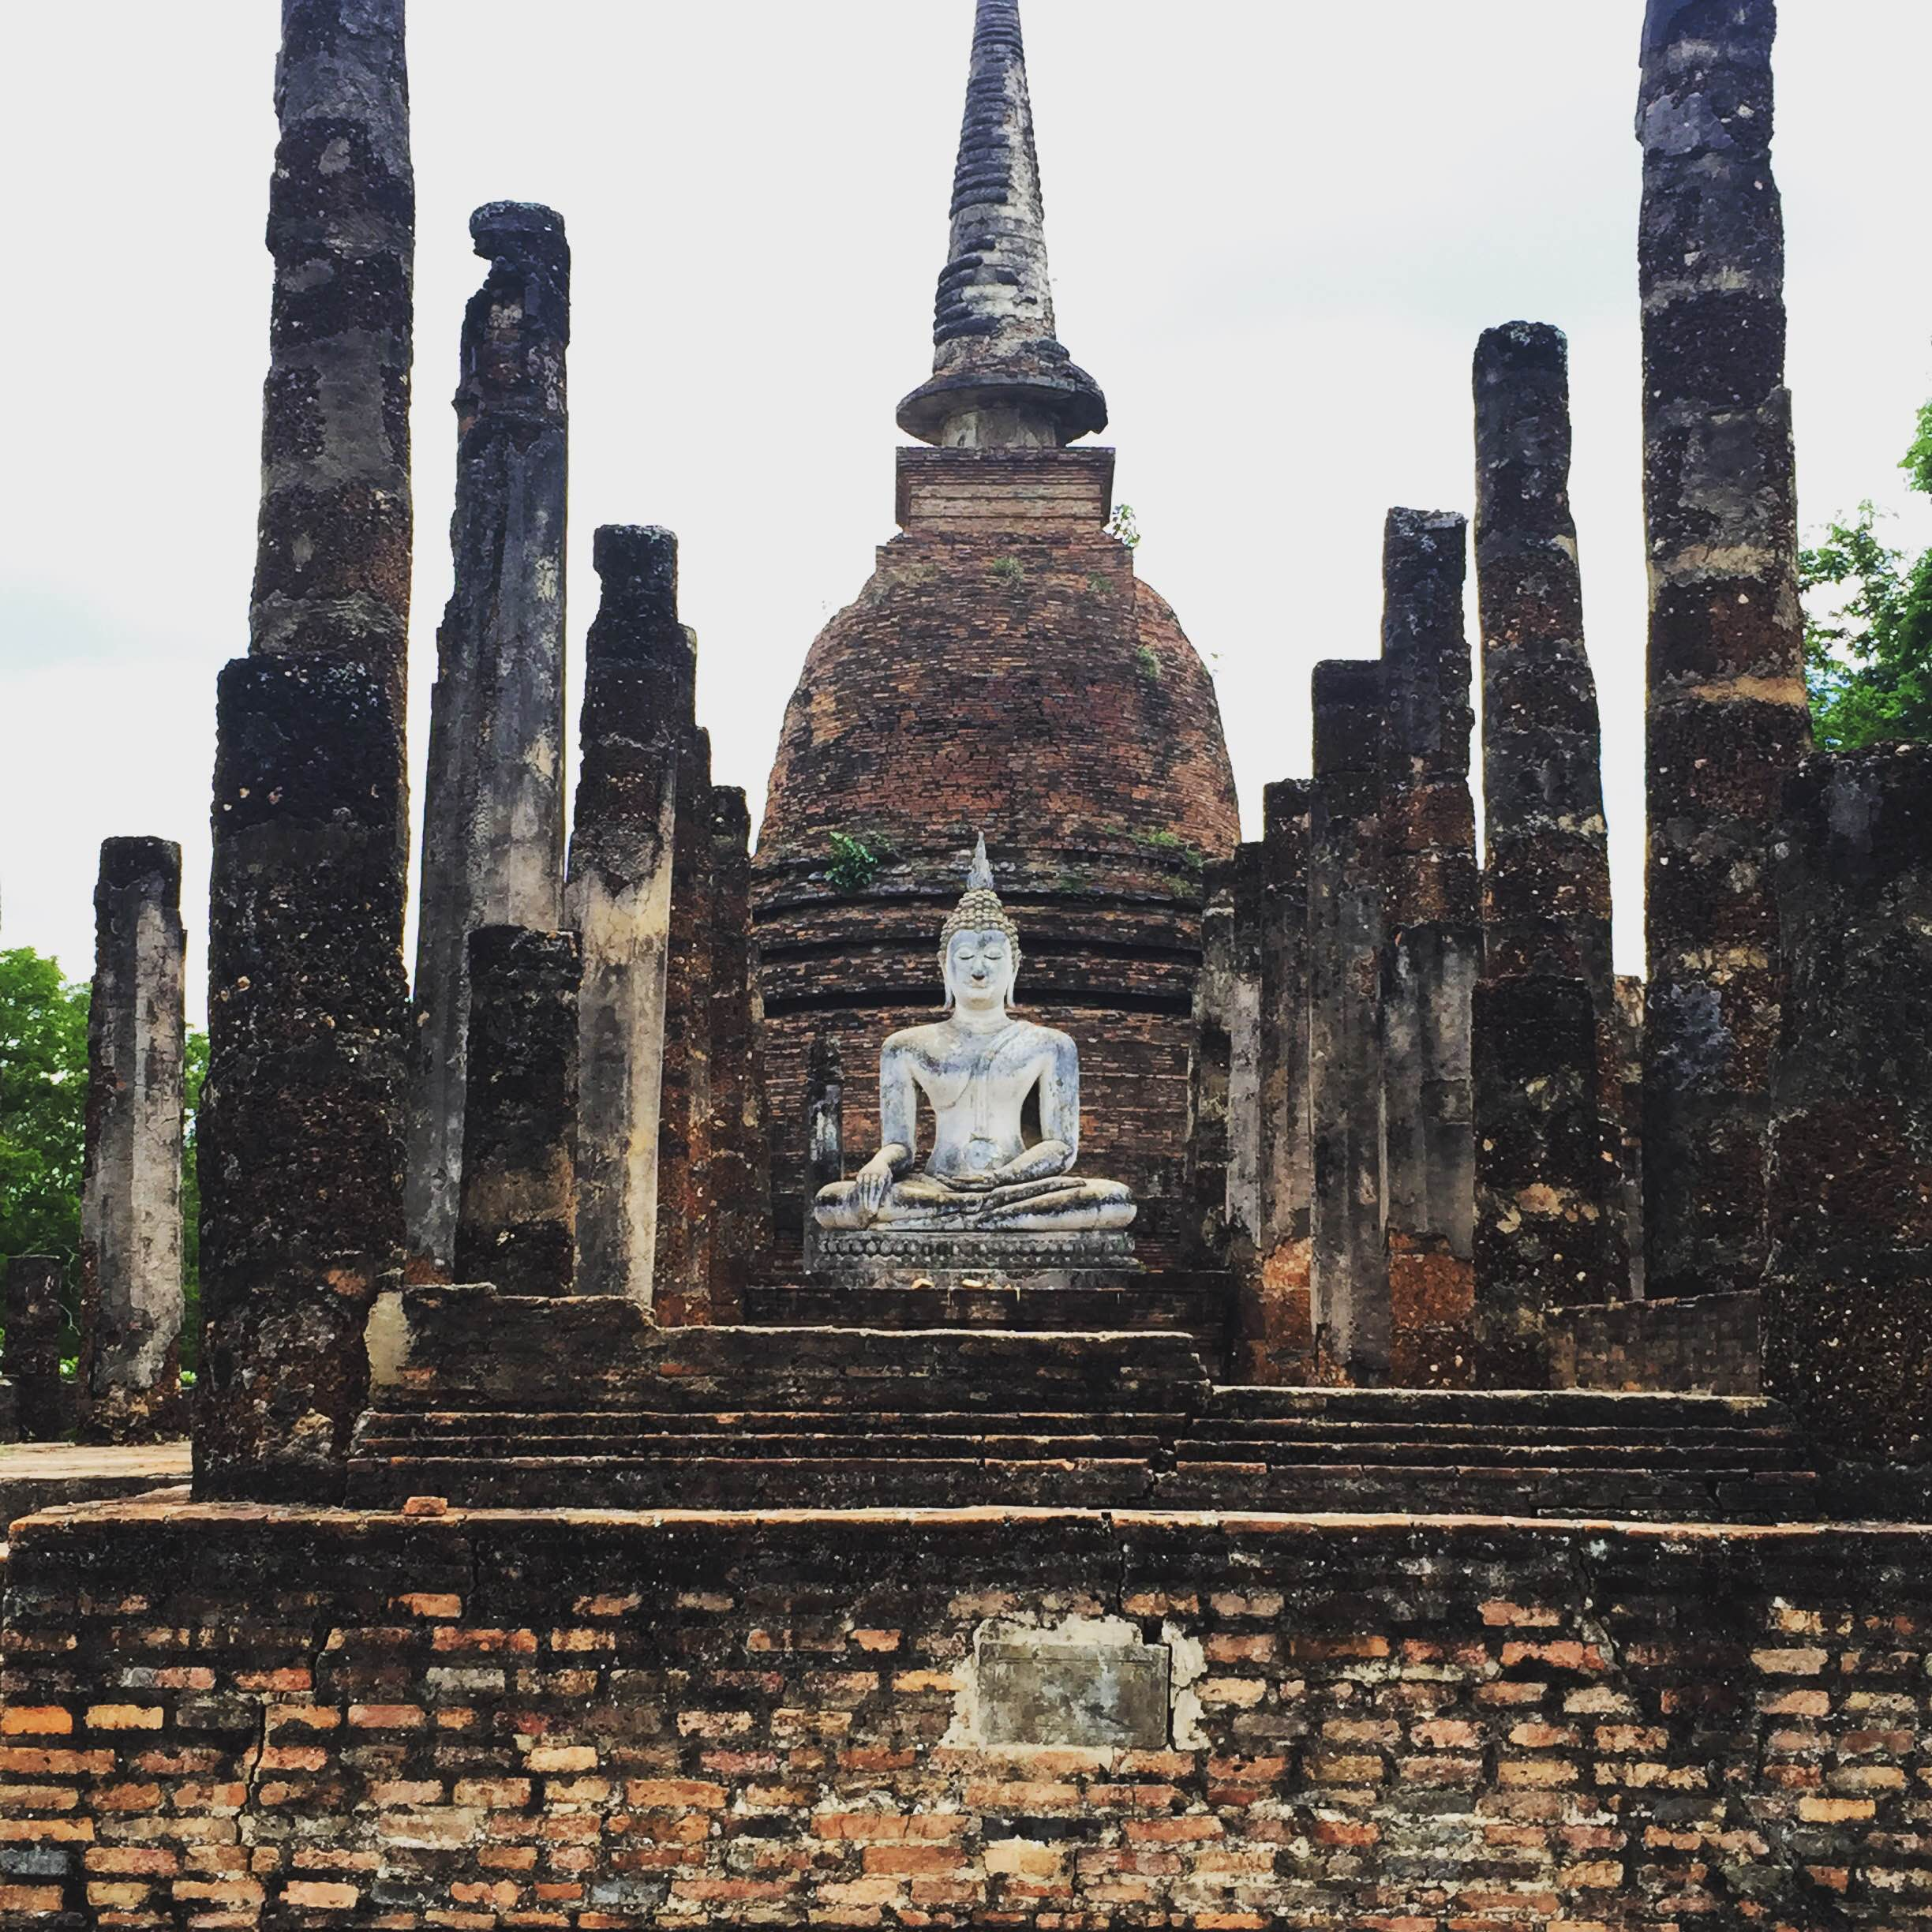 An incredible Buddha statue in the ancientruins of Sukhothai.